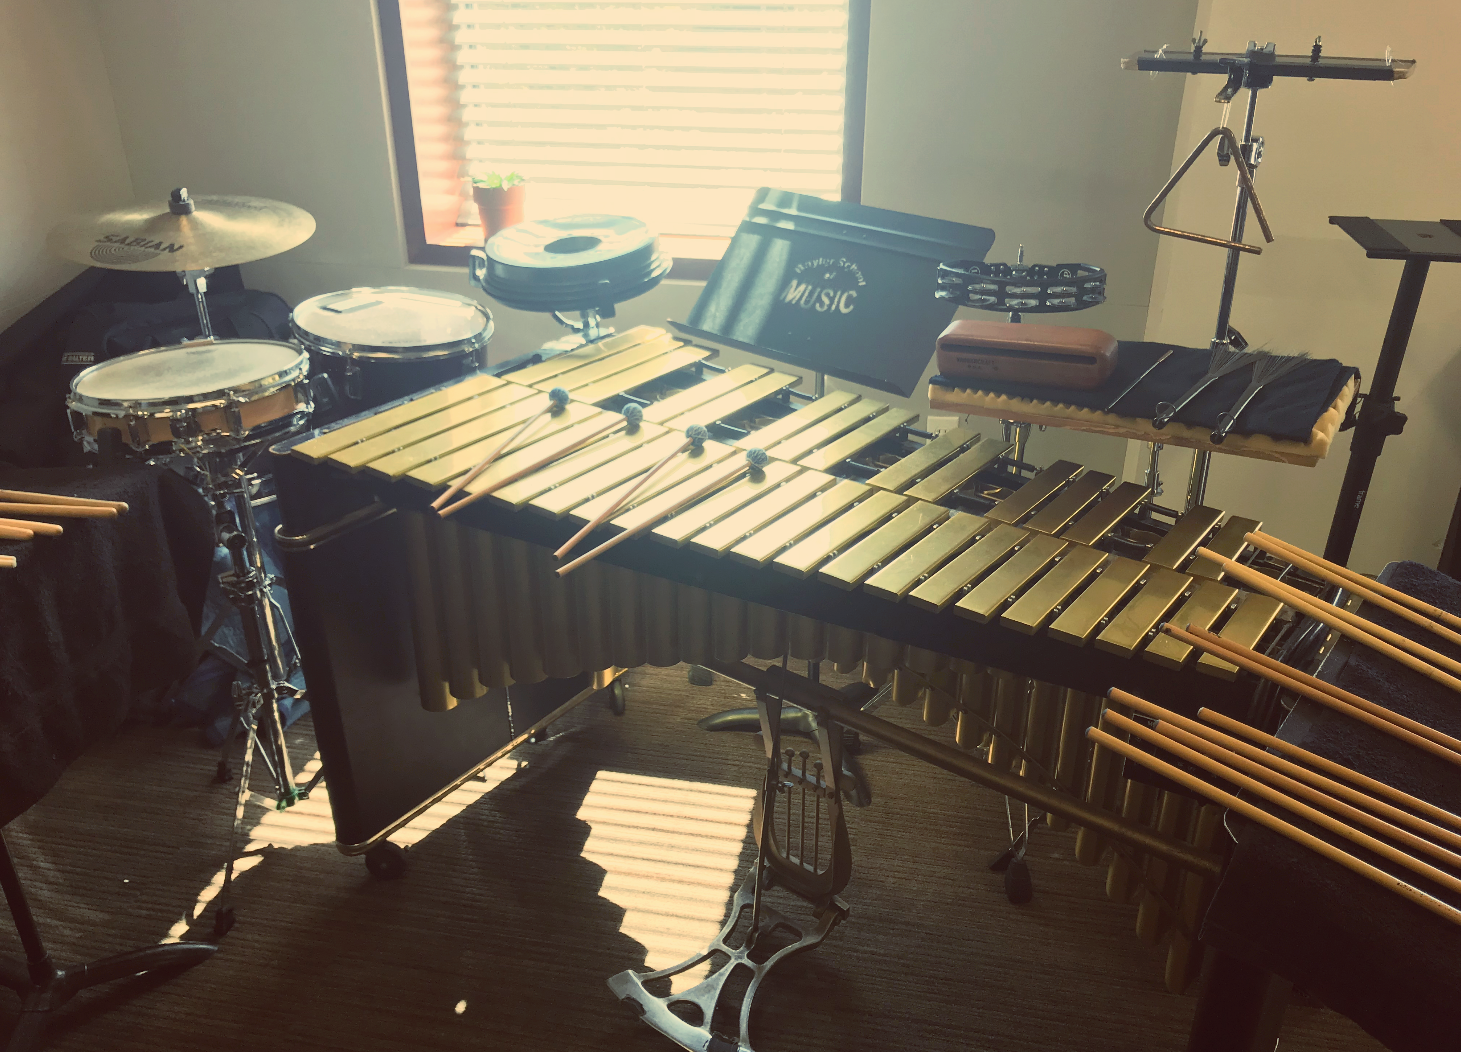 Percussion instruments set up in the composition lab